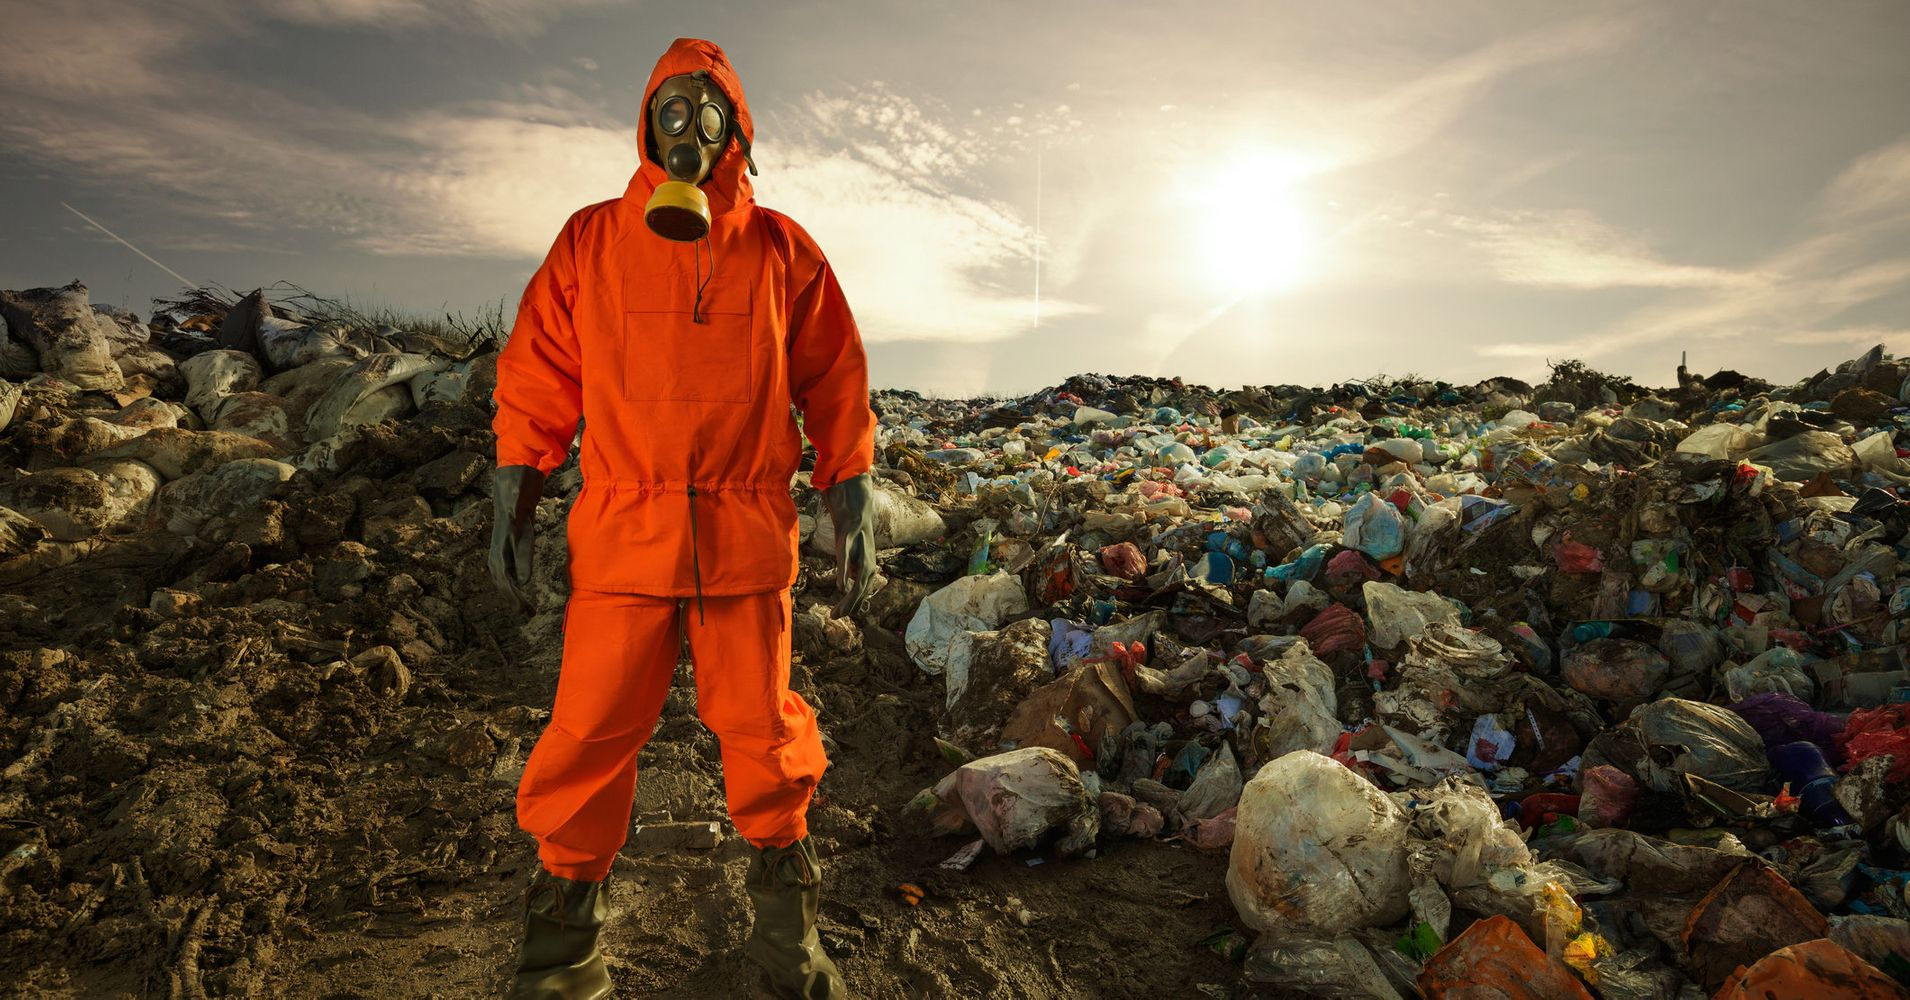 Waste Couture: Environmental Impact of the Clothing Industry